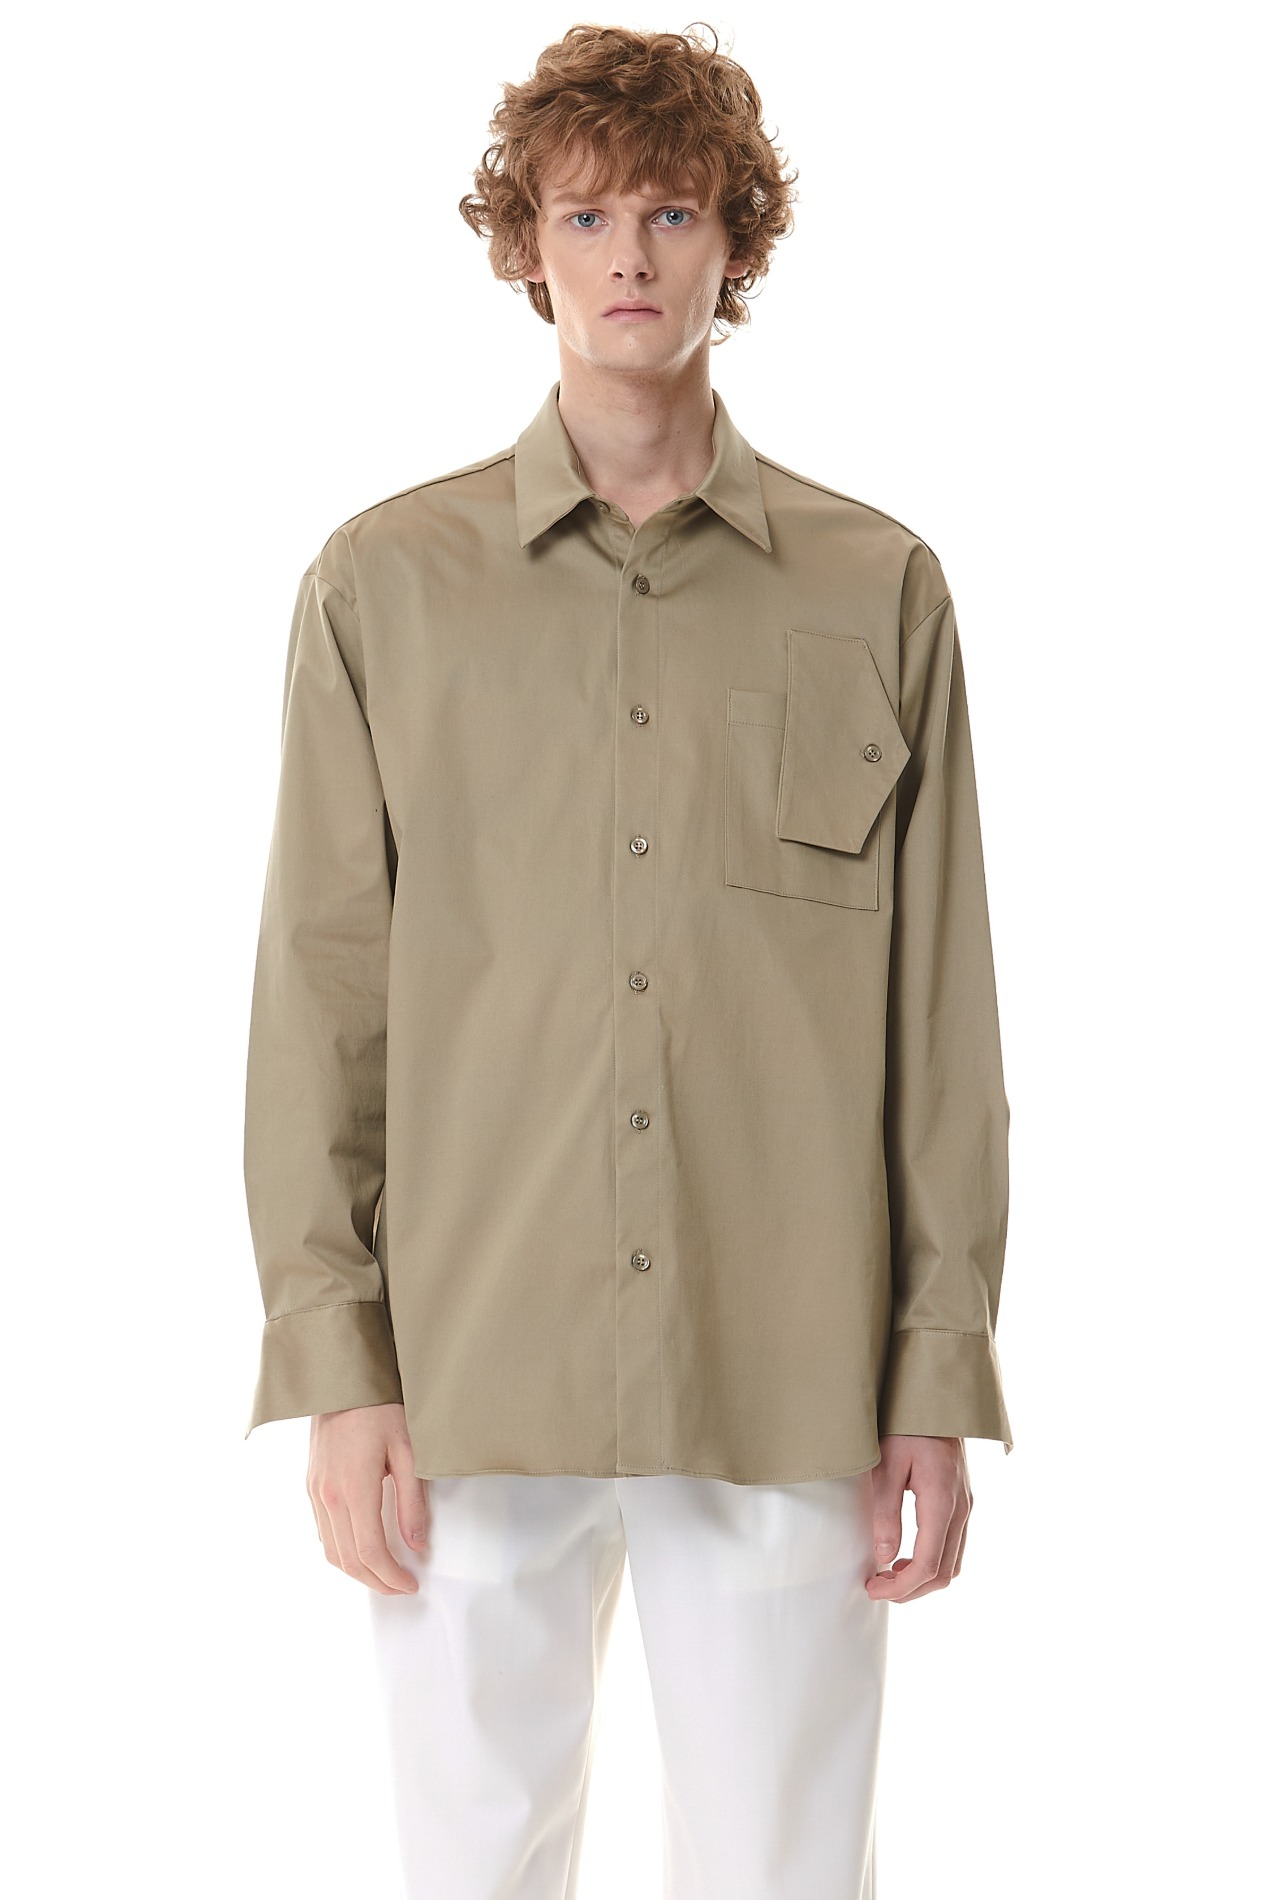 FreakPocket Over Shirt(Khaki)